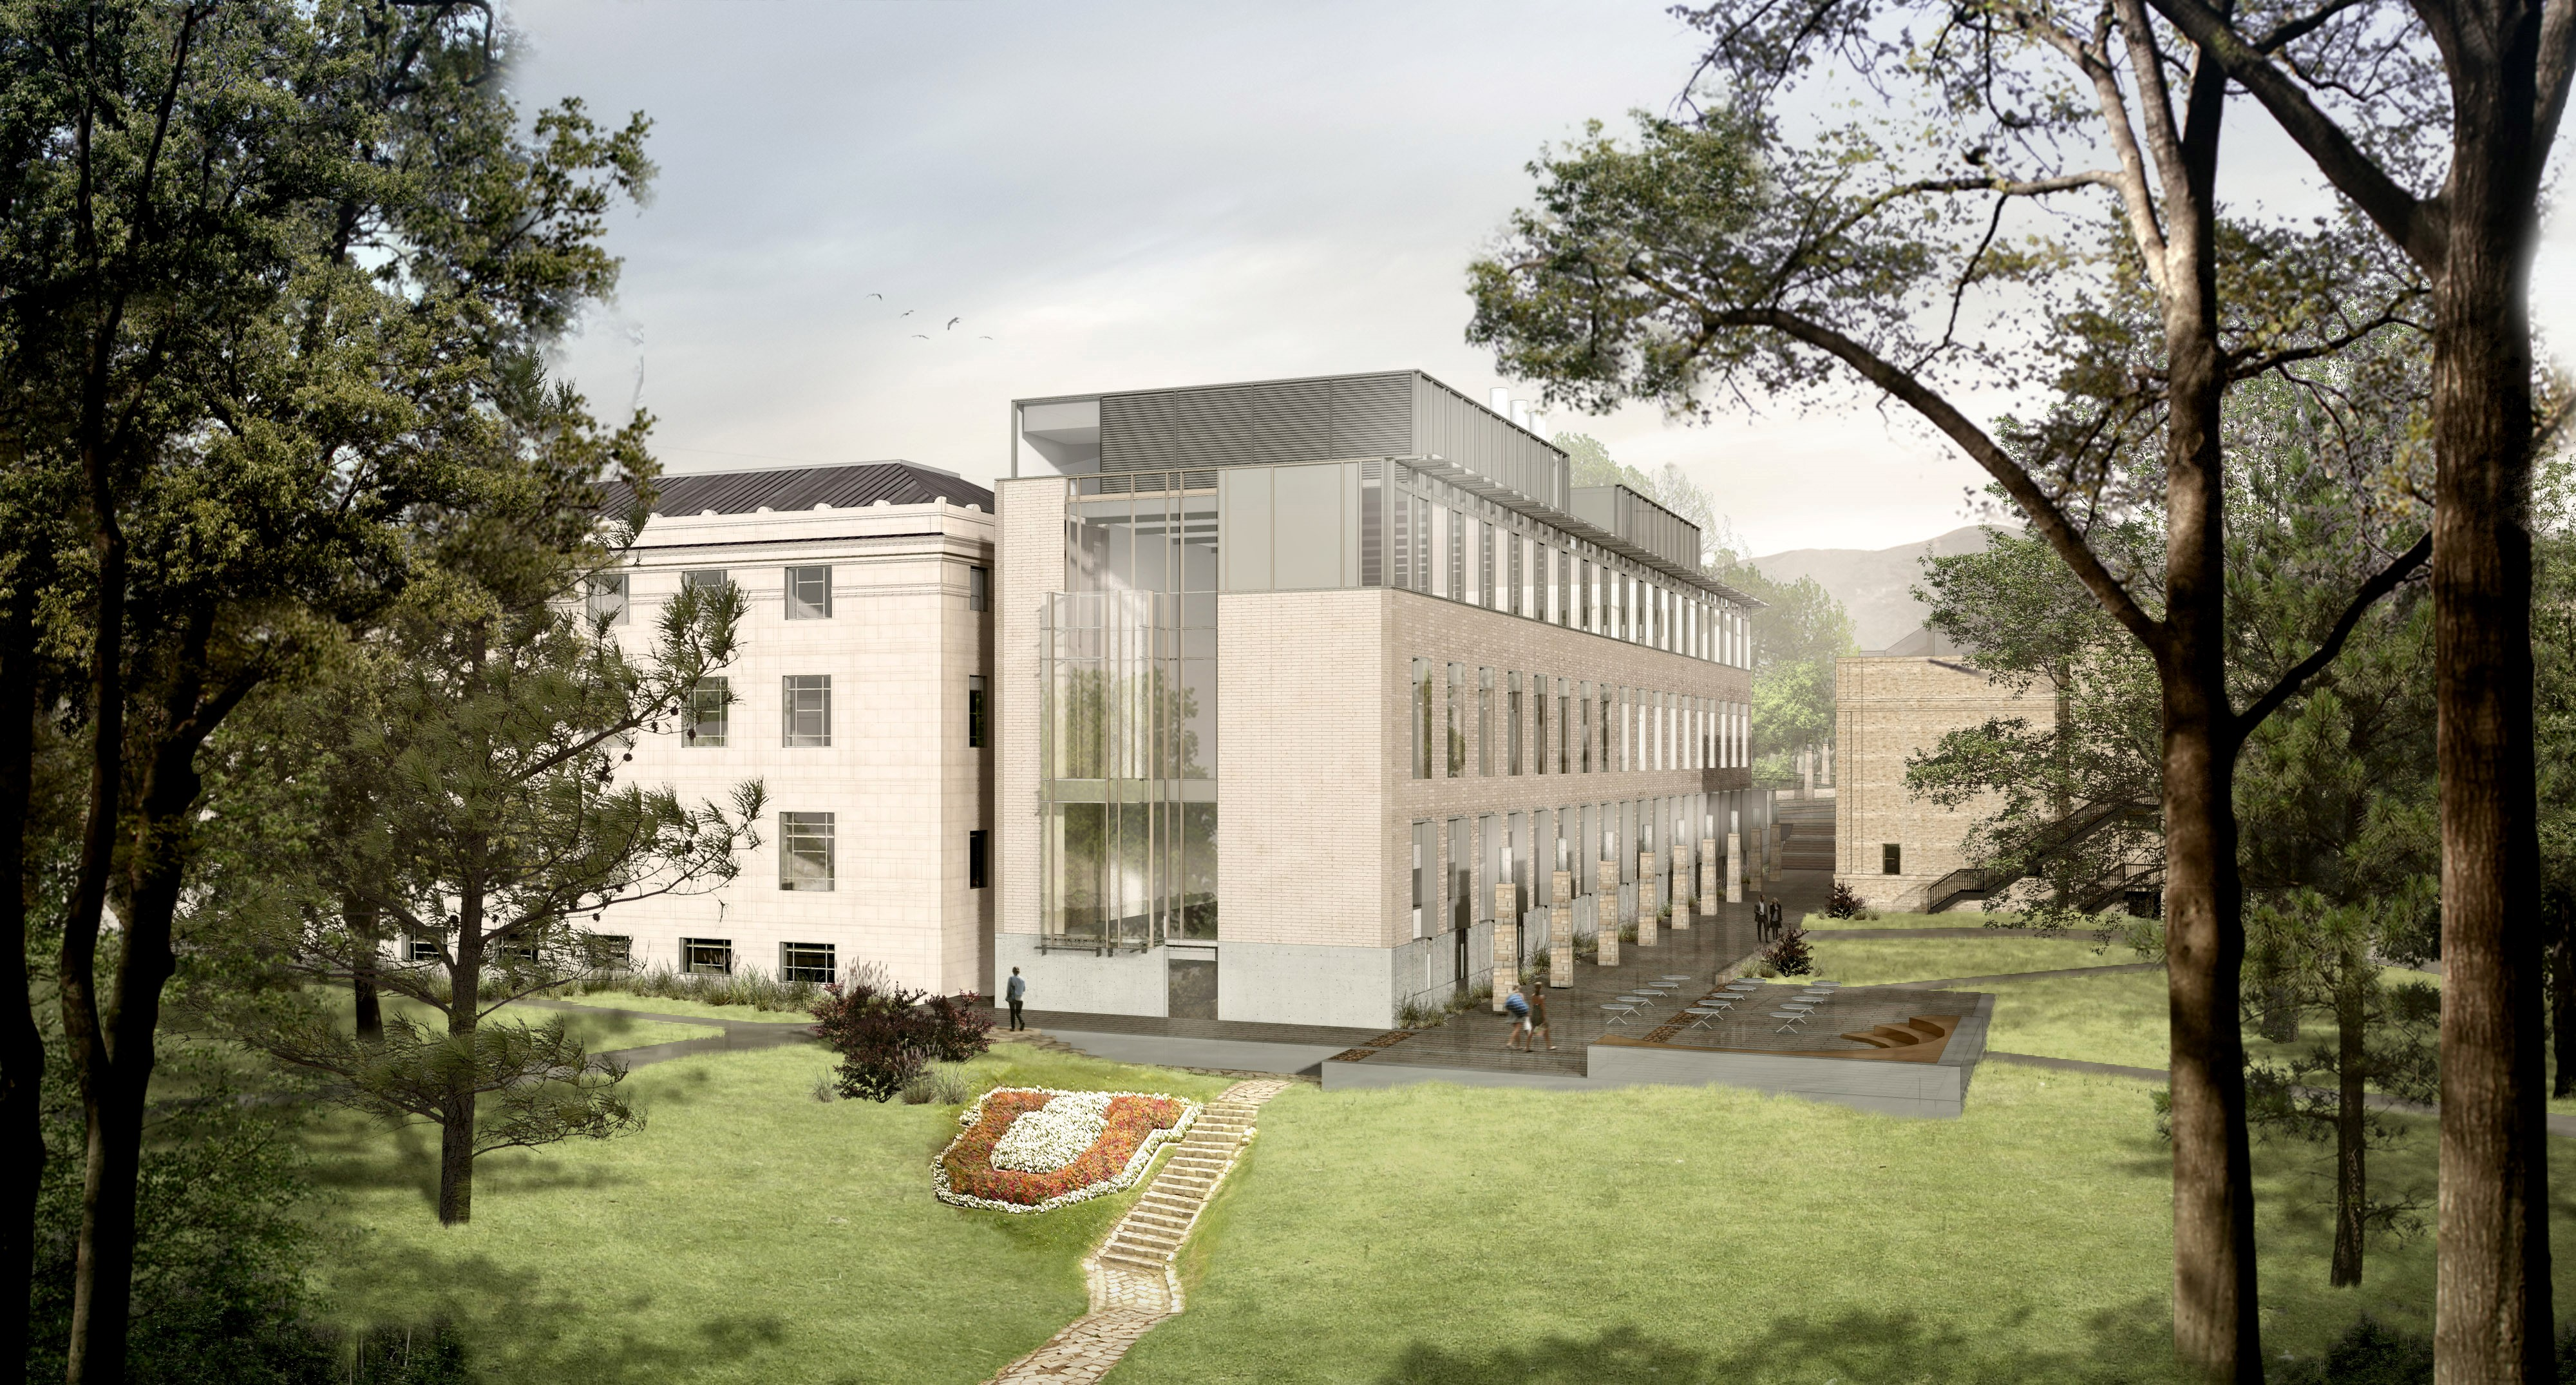 Science house at the science museum of minnesota - University Of Utah College Of Science Breaks Ground On Crocker Science Center Unews